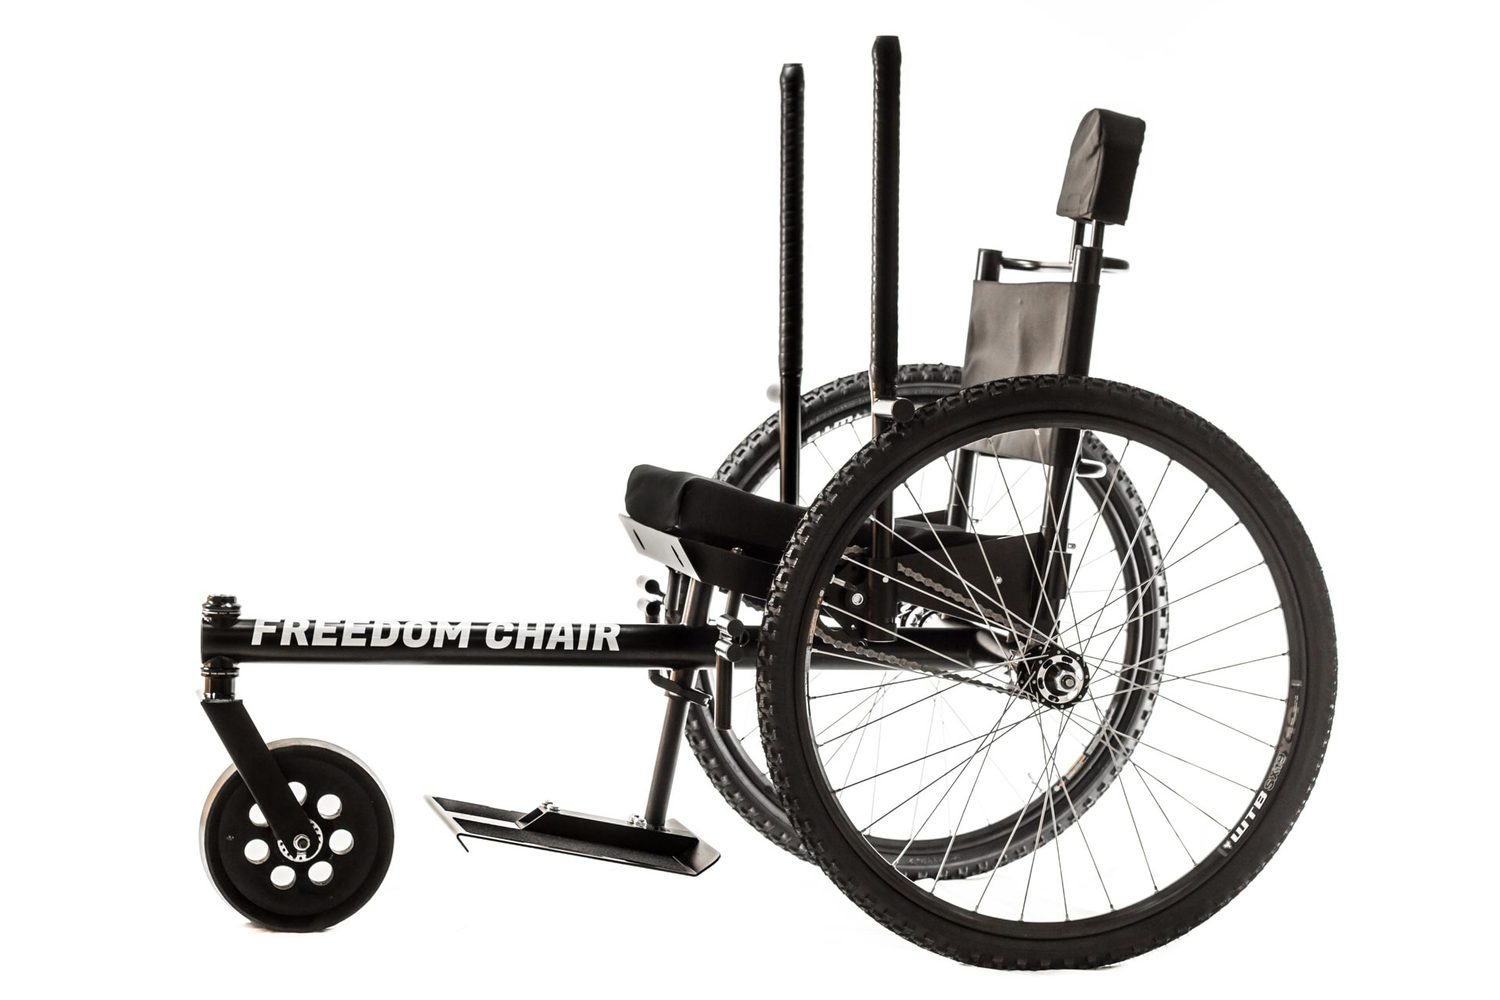 grit-freedom-chair